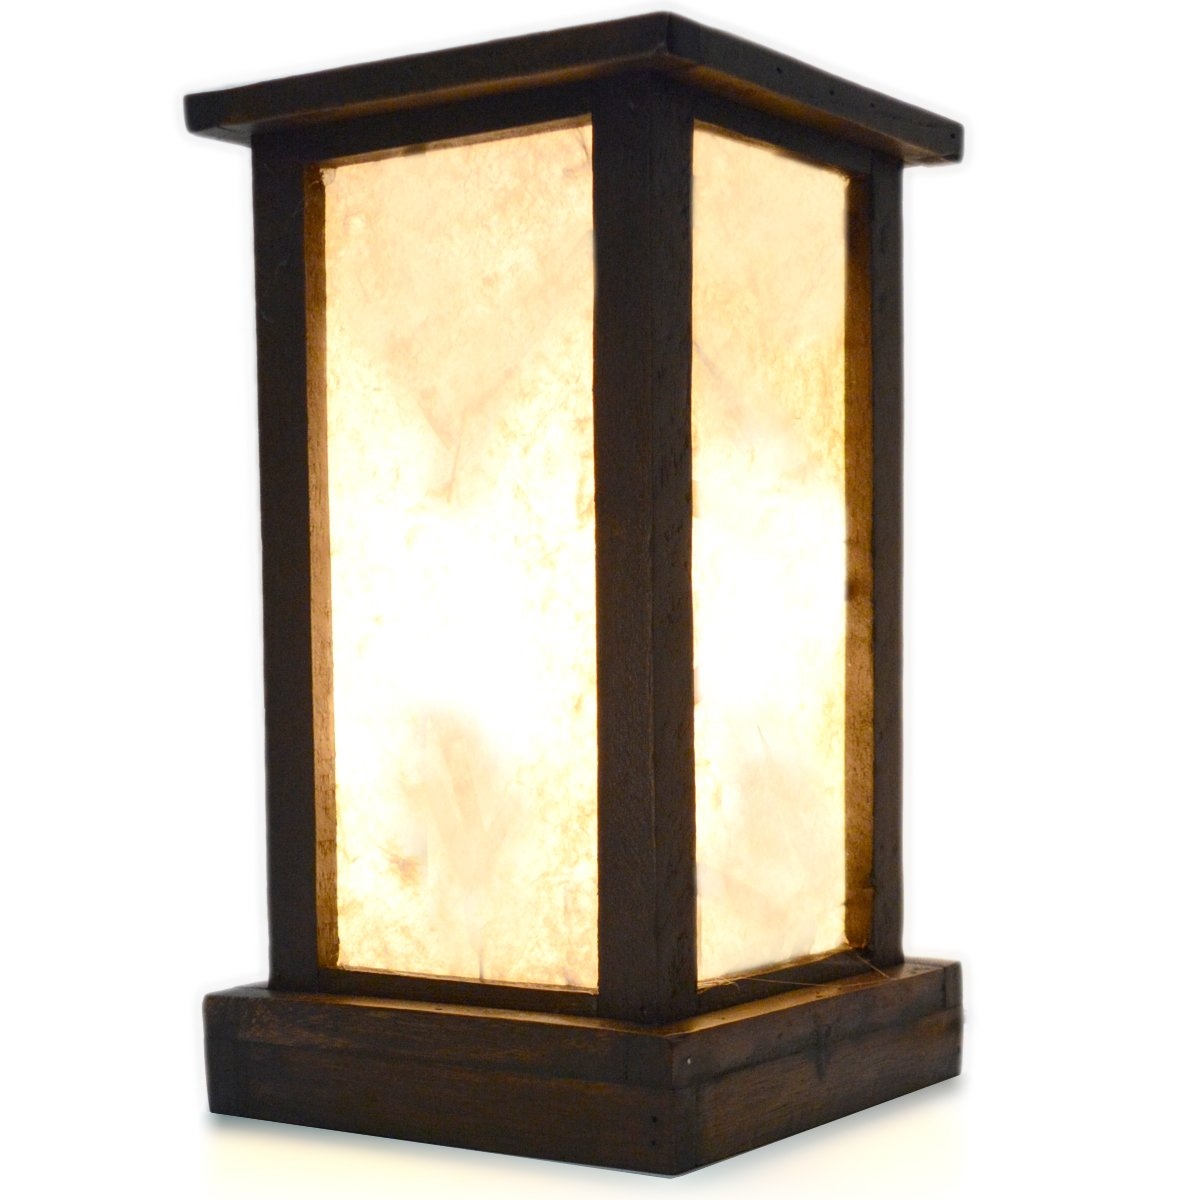 FAI Wood Frame and Paper Mache Shade Rustic Oriental Accent Table Lamp, 10.5 inch White Shade